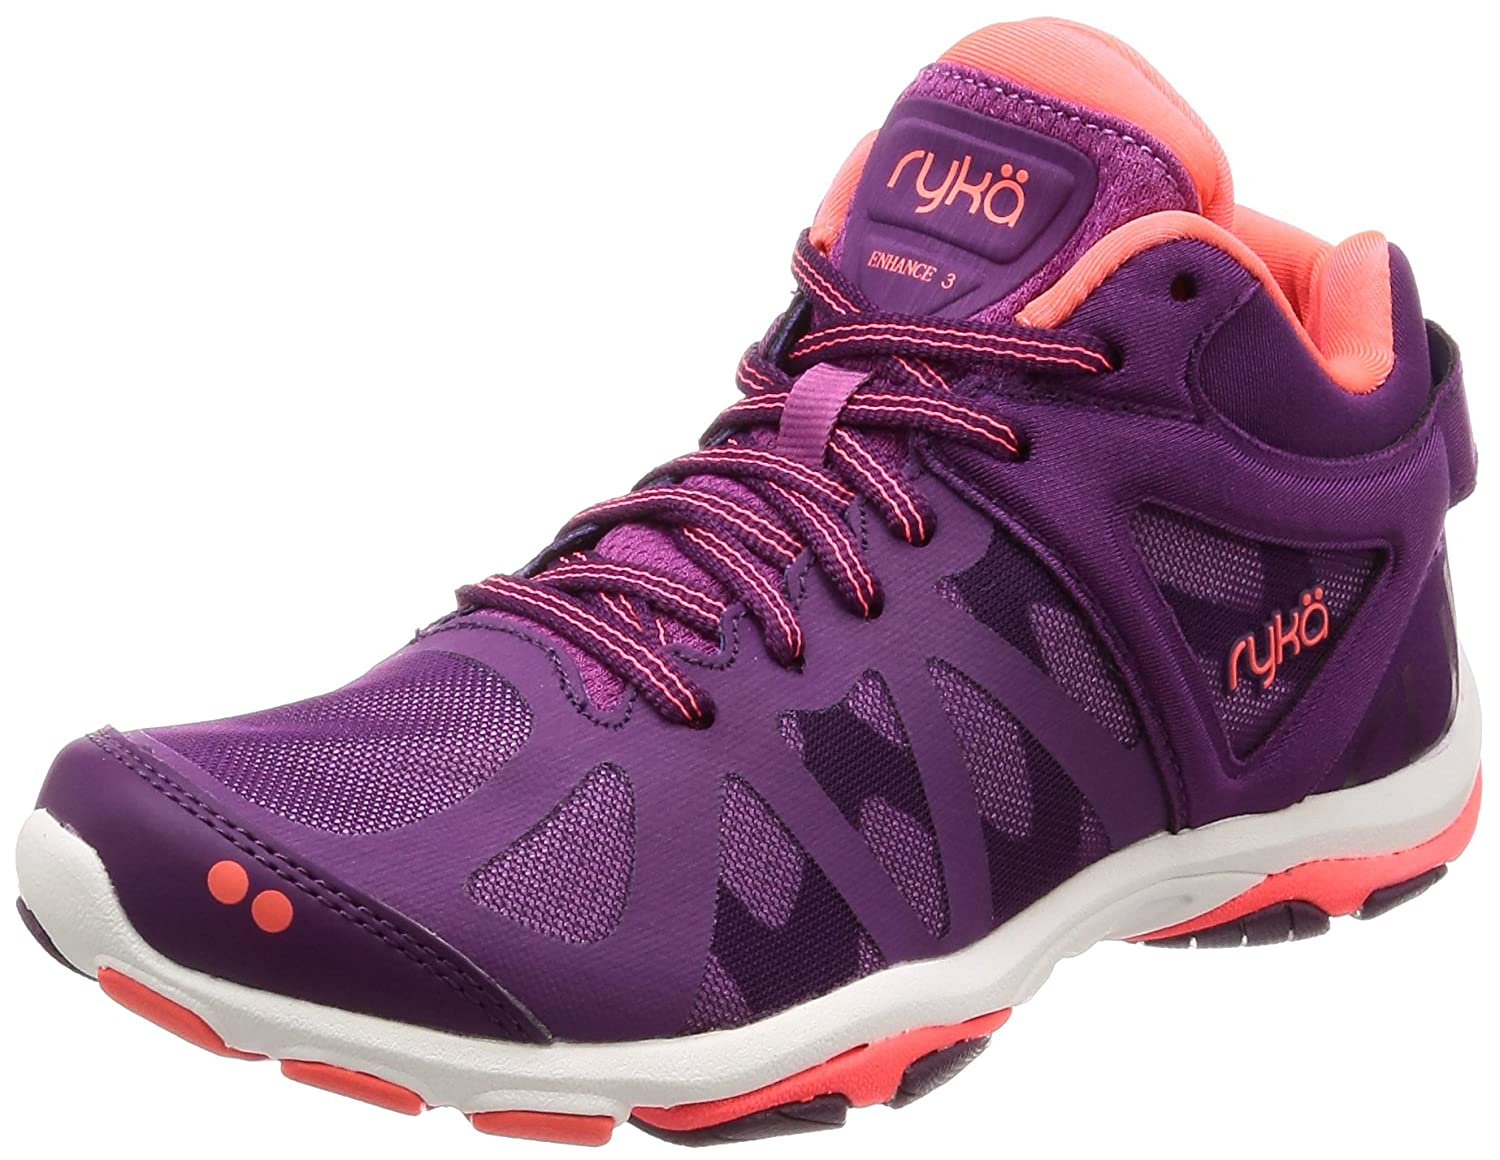 Ryka Women's Enhance 3 Cross-Trainer Shoe B0788SZ4D2 7 B(M) US|Grape Juice